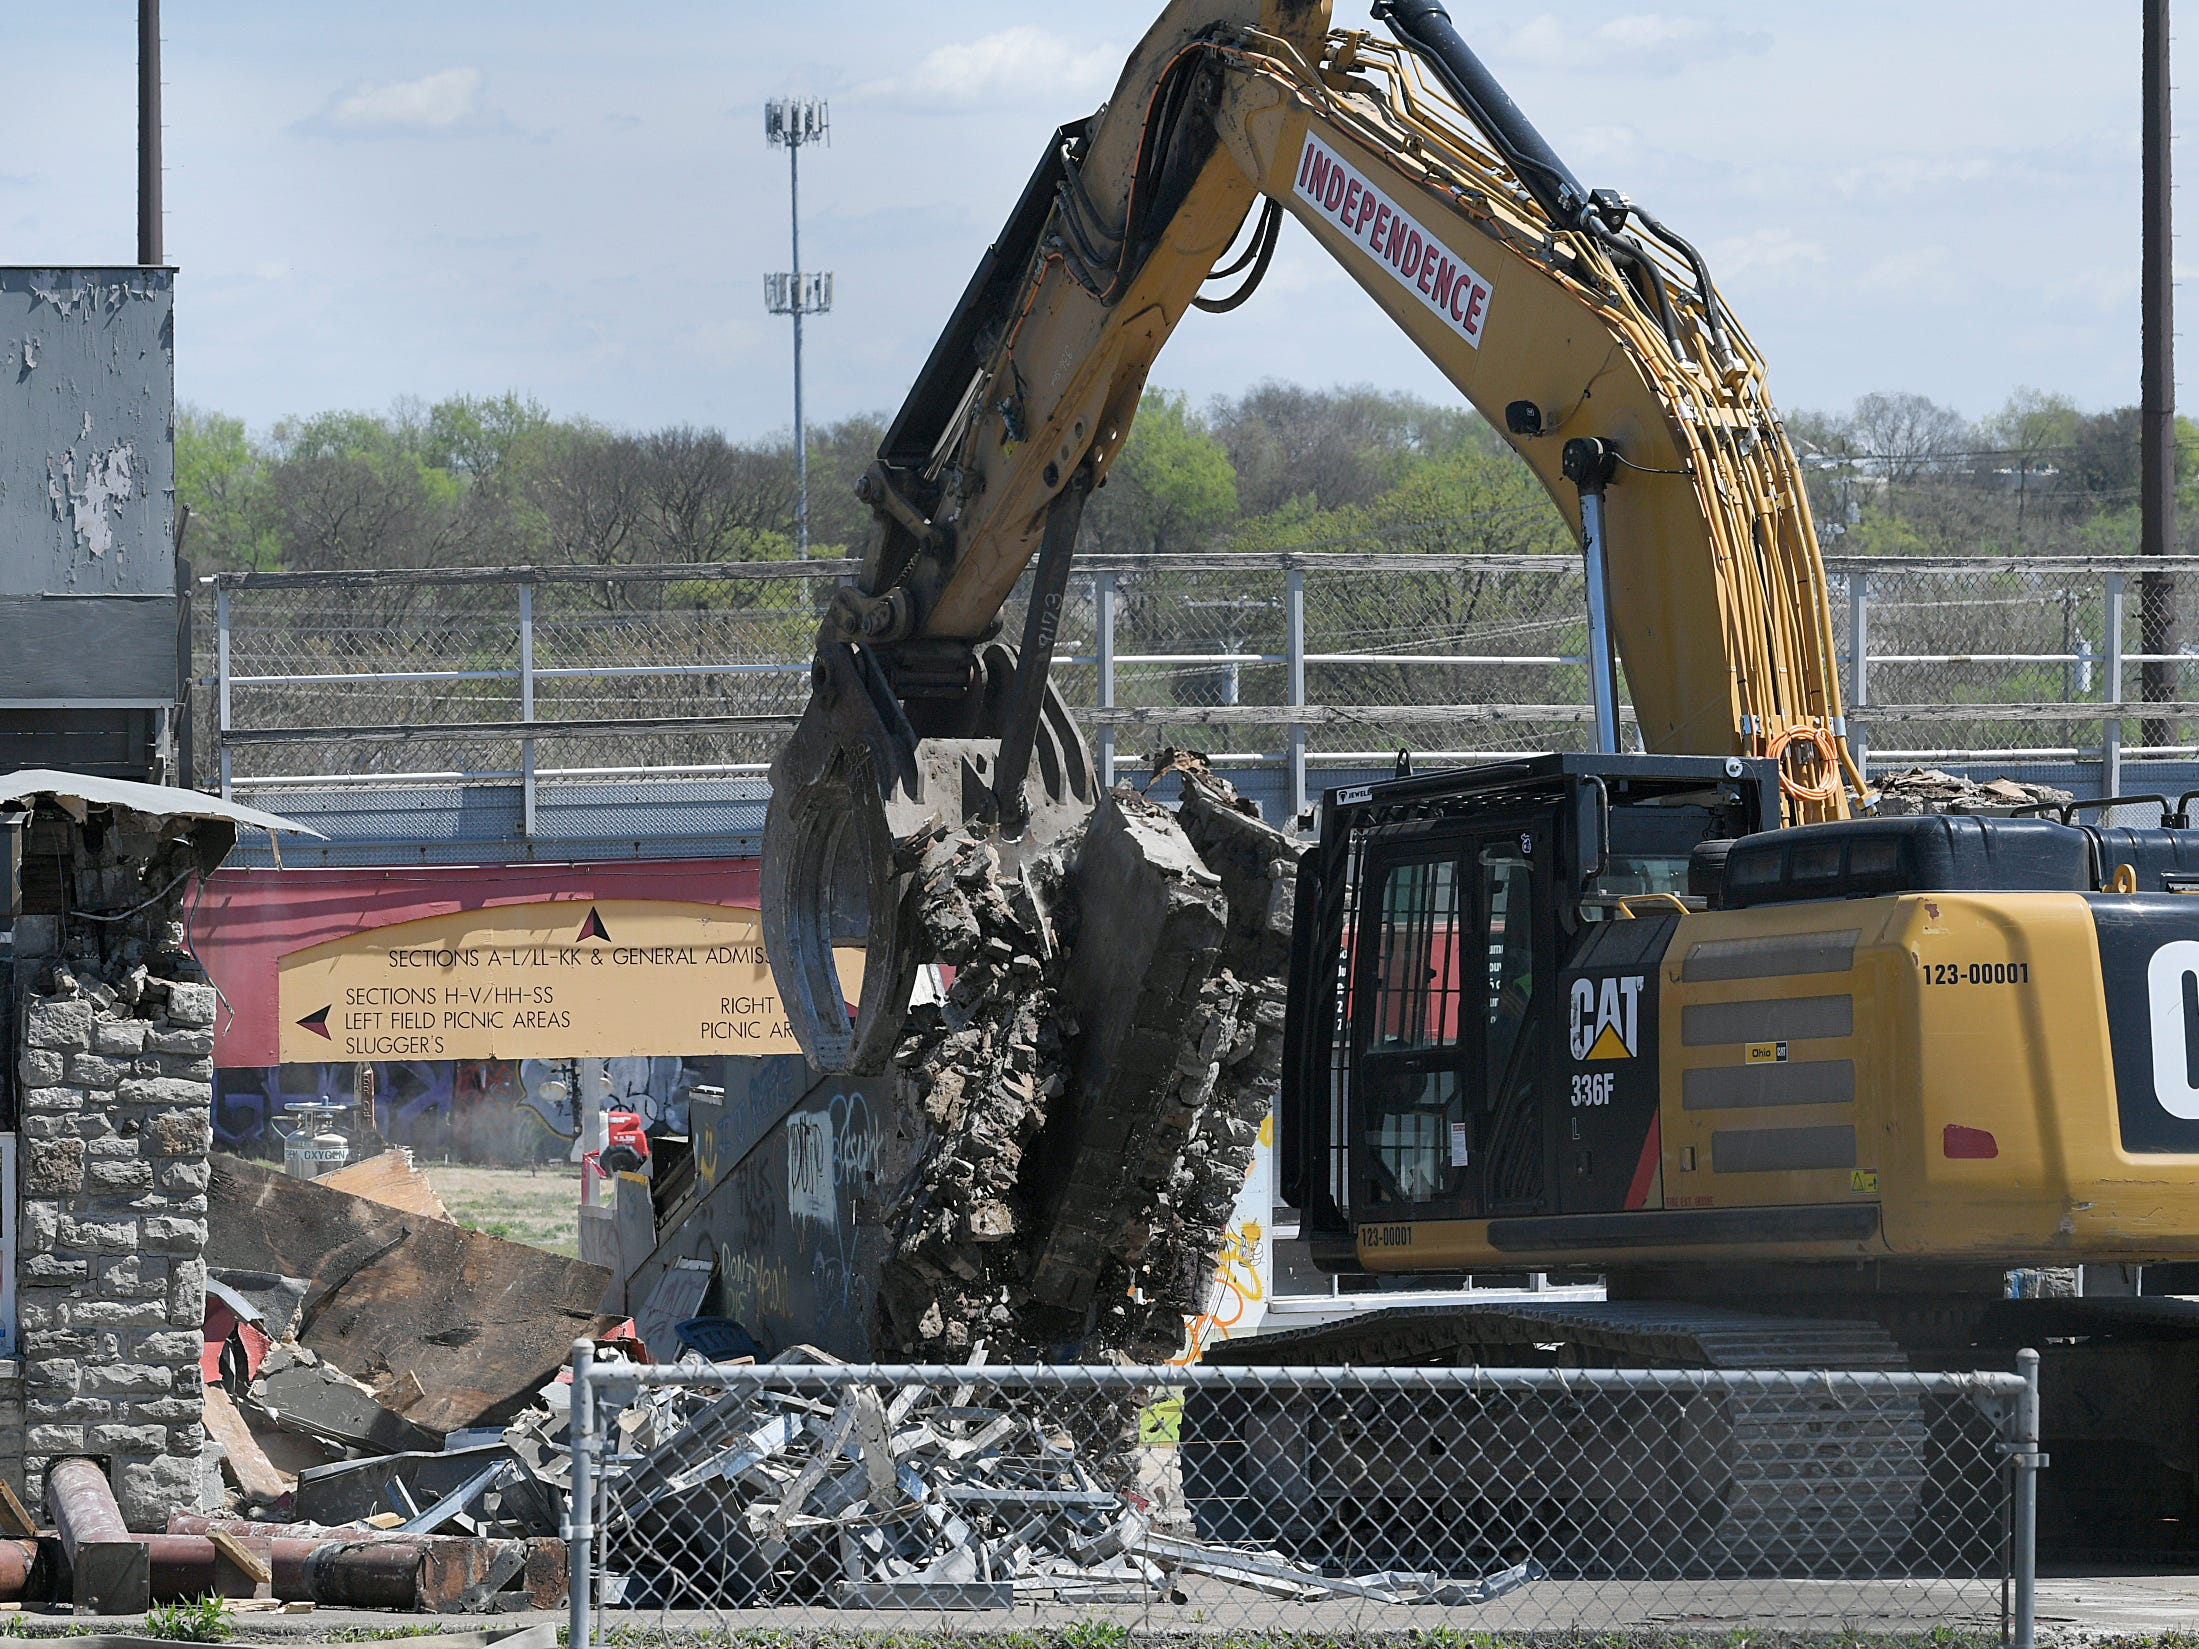 Demolition of Greer Stadium has started. Crews begin tearing down the 41-year-old stadium which opened in 1978 as the home of the Nashville Sounds minor league baseball team, but the team moved to the new First Tennessee Park in Germantown in 2015.